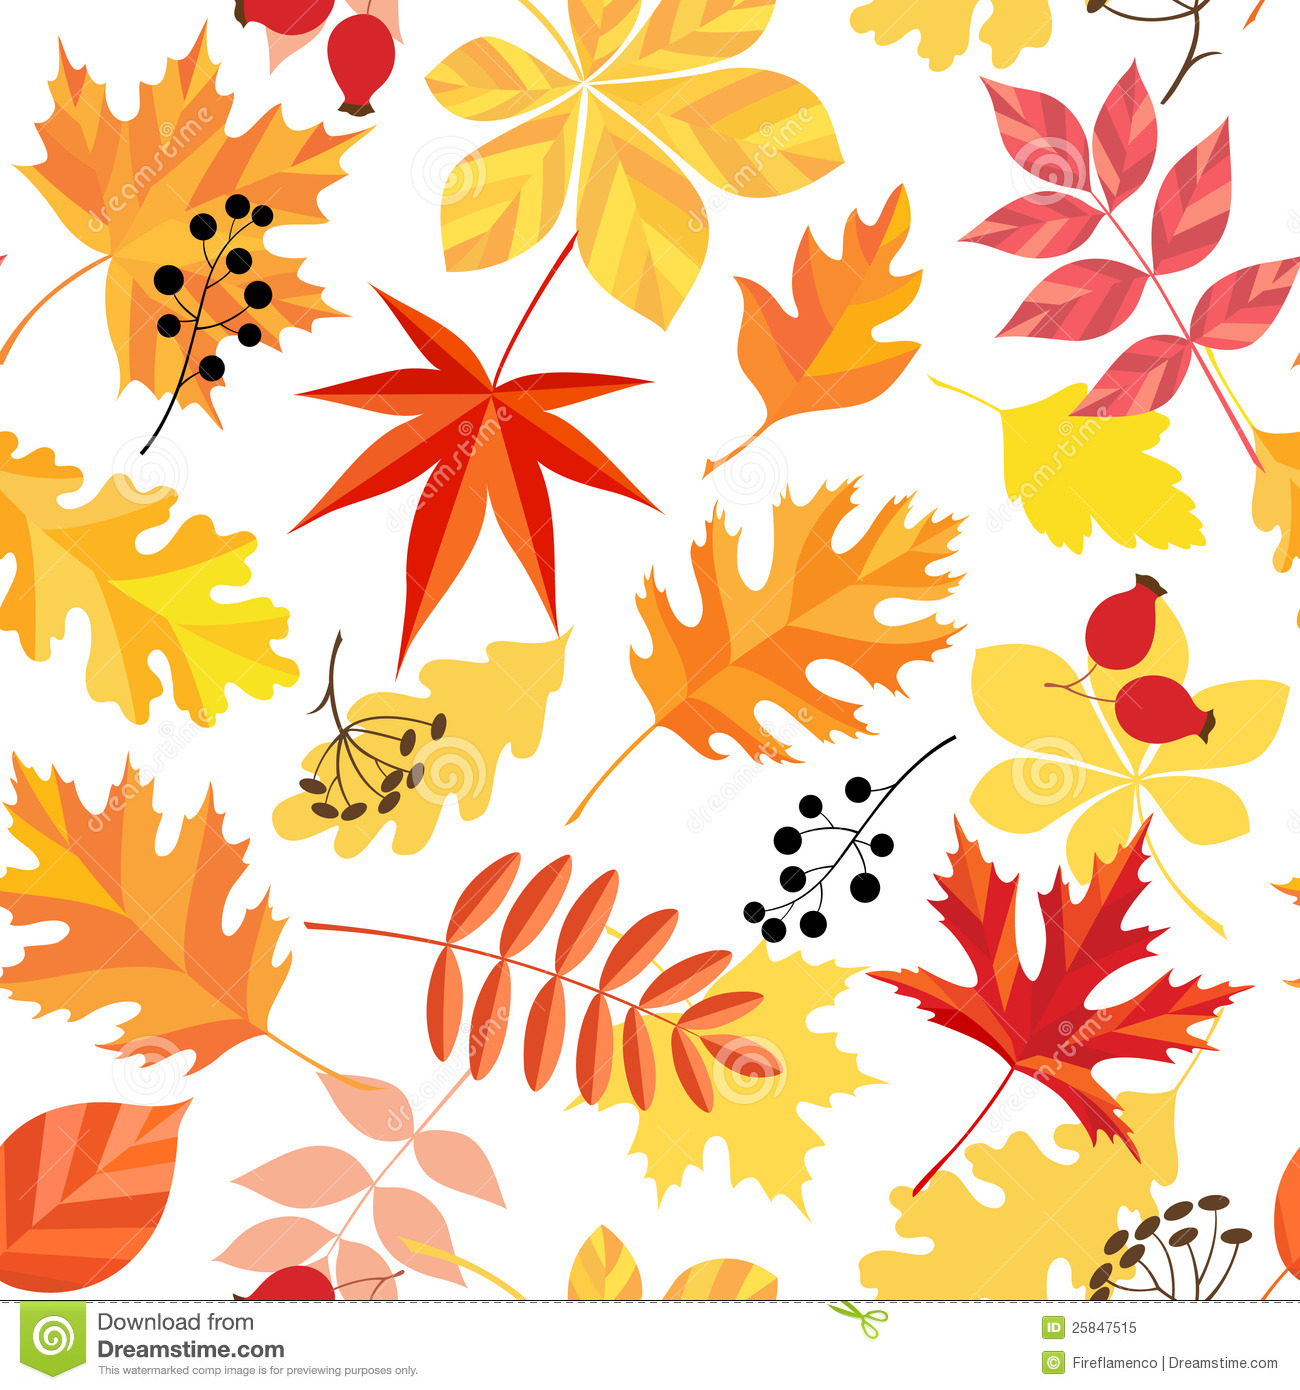 Fall Maple Leaf Tiled Wallpaper Autumn Leaves Pattern Royalty Free Stock Photo Image